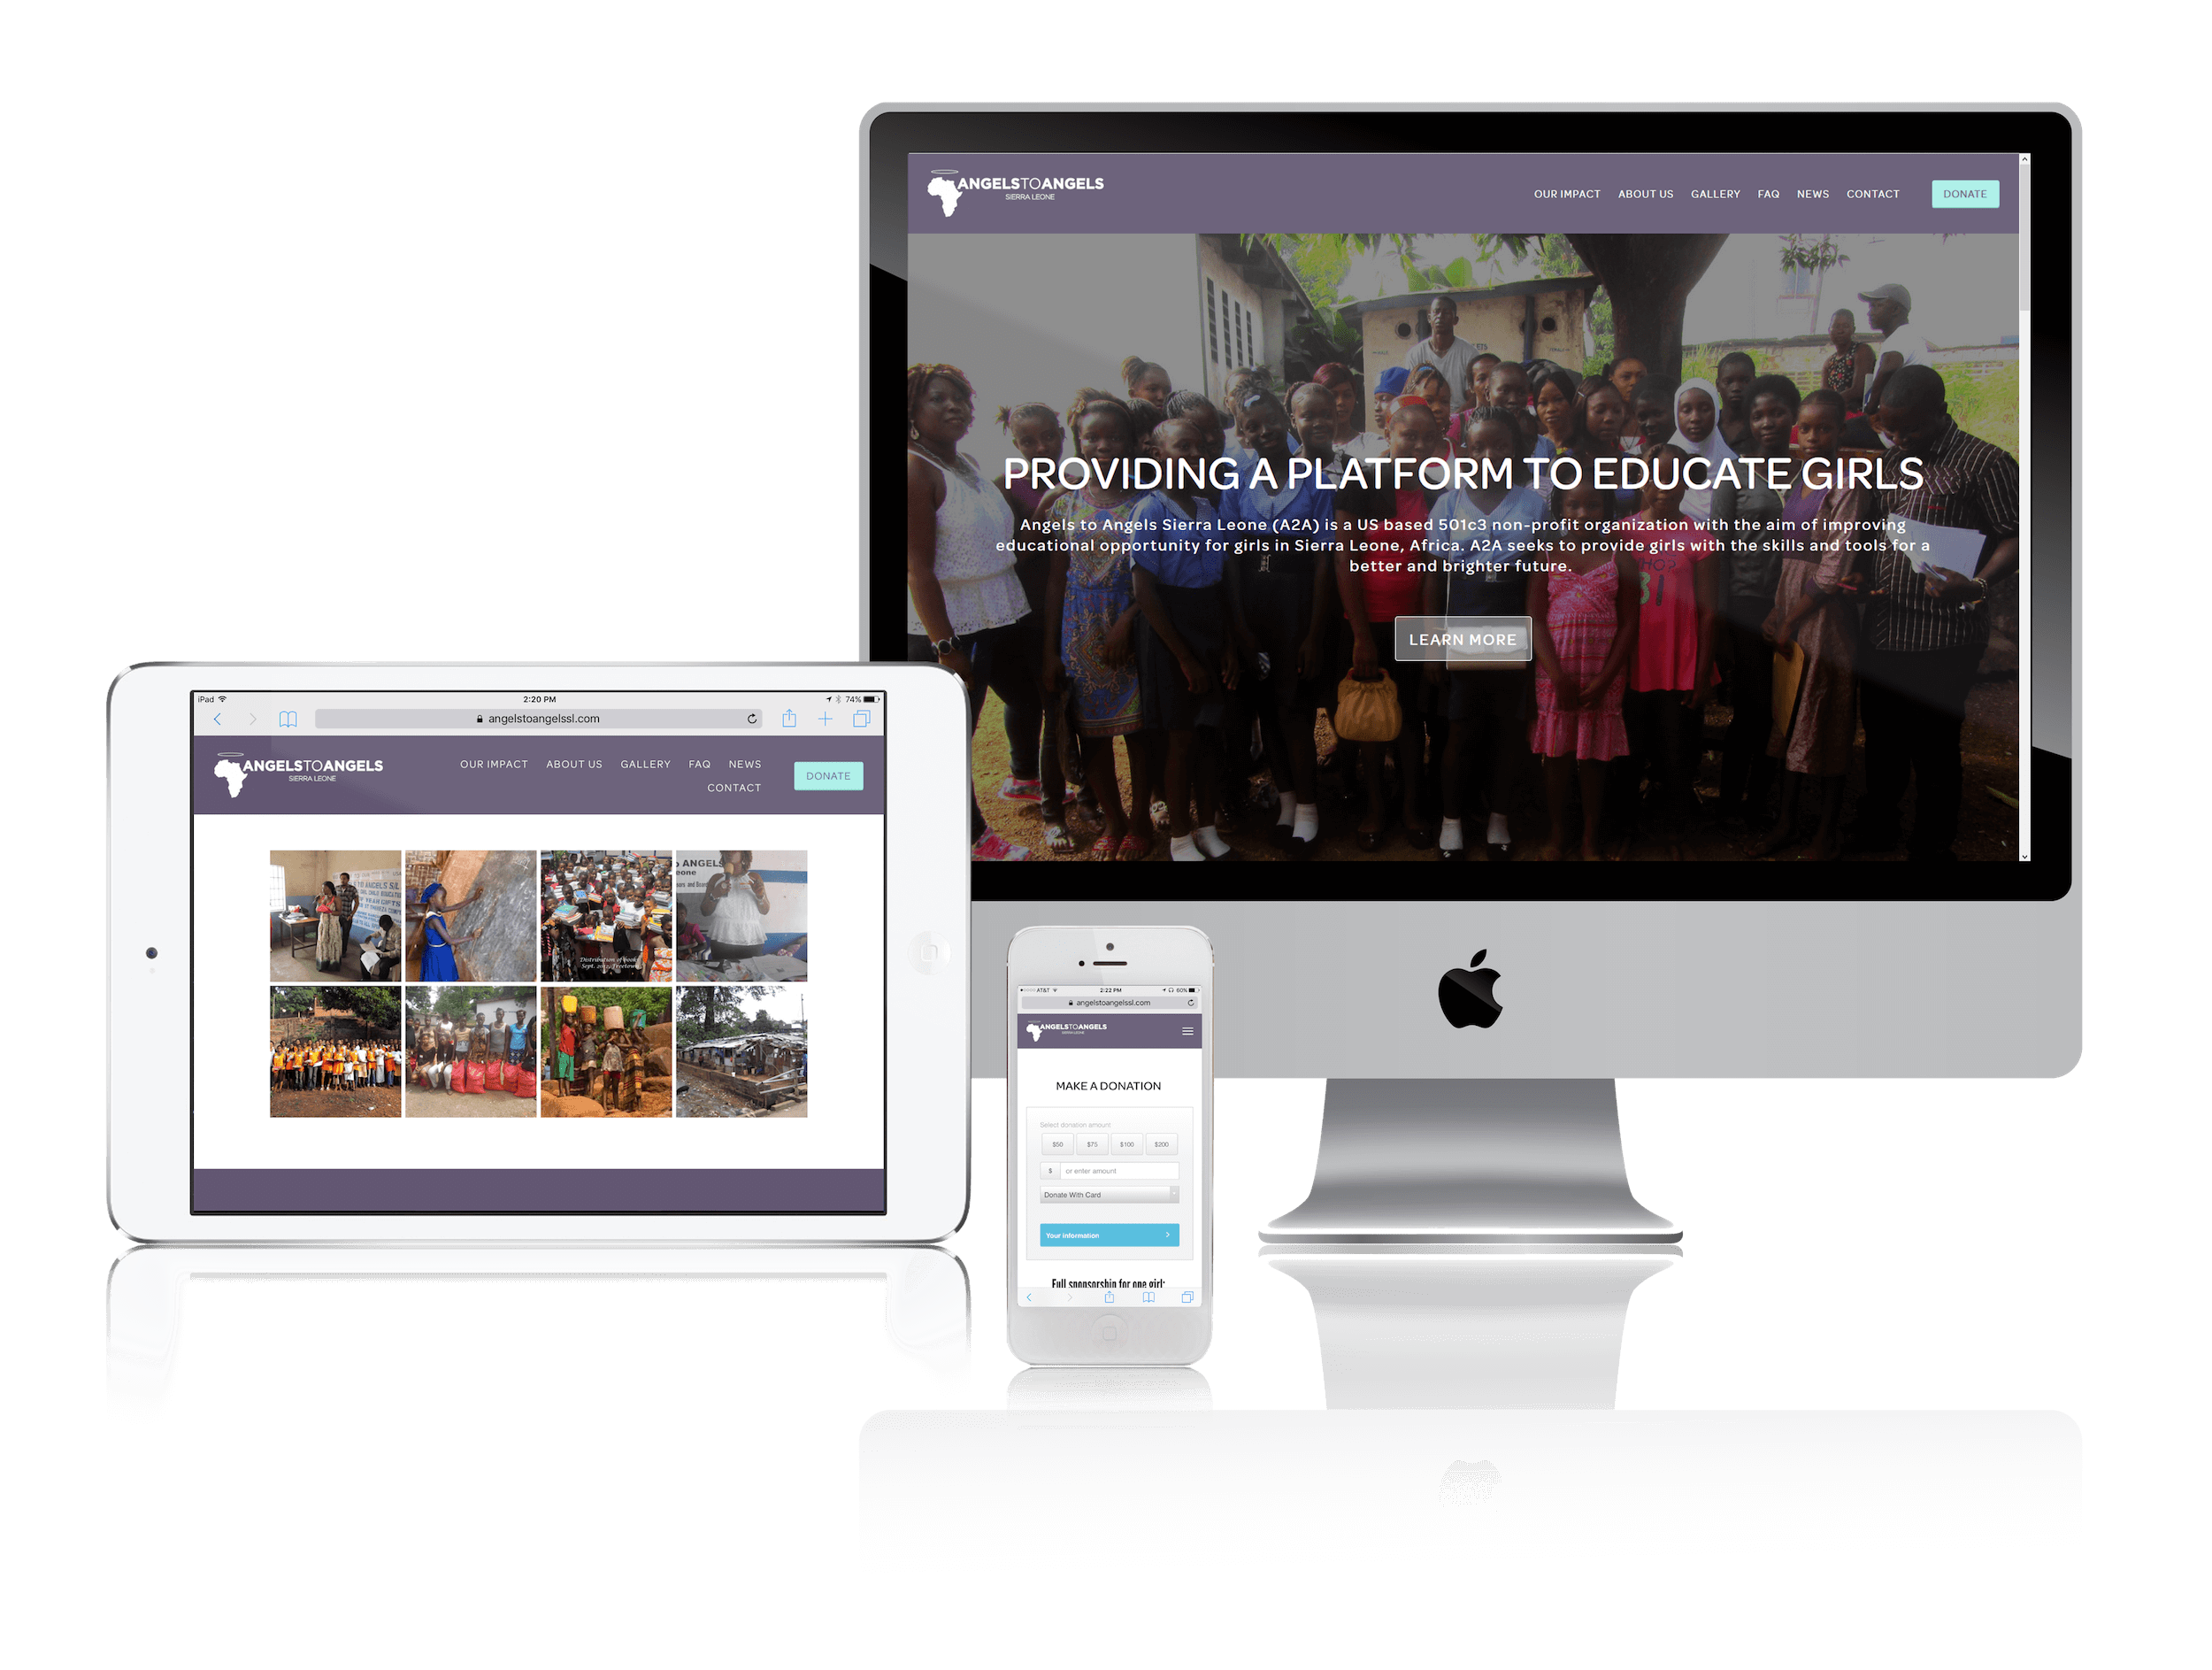 Squarespace for Nonprofit Supporting Education for Girls in Africa